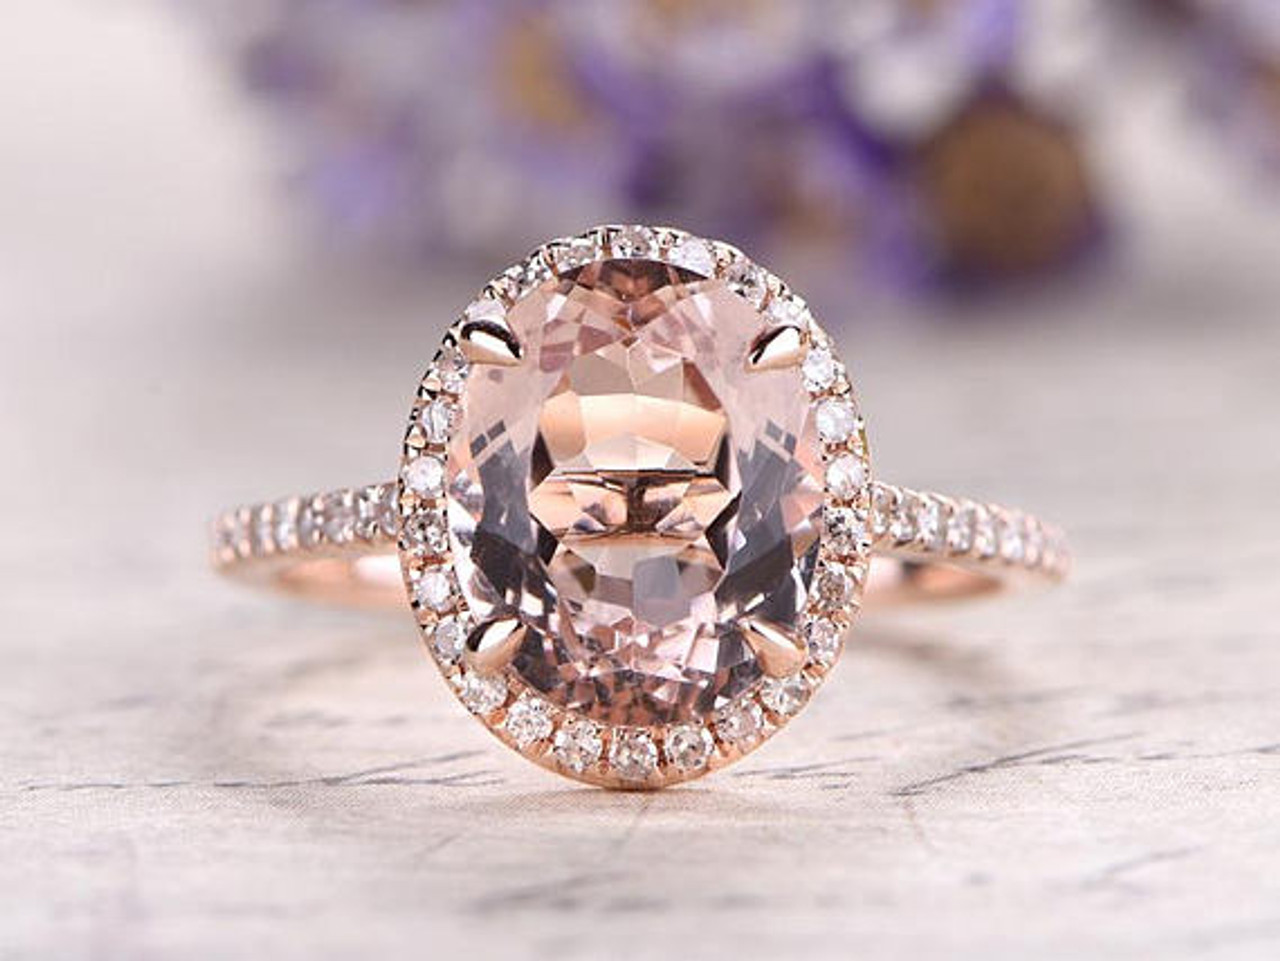 Oval cut pink morganite engagement ringsolid 14k rose gold wedding oval cut pink morganite engagement ringsolid 14k rose gold wedding ringdiamond promise junglespirit Choice Image